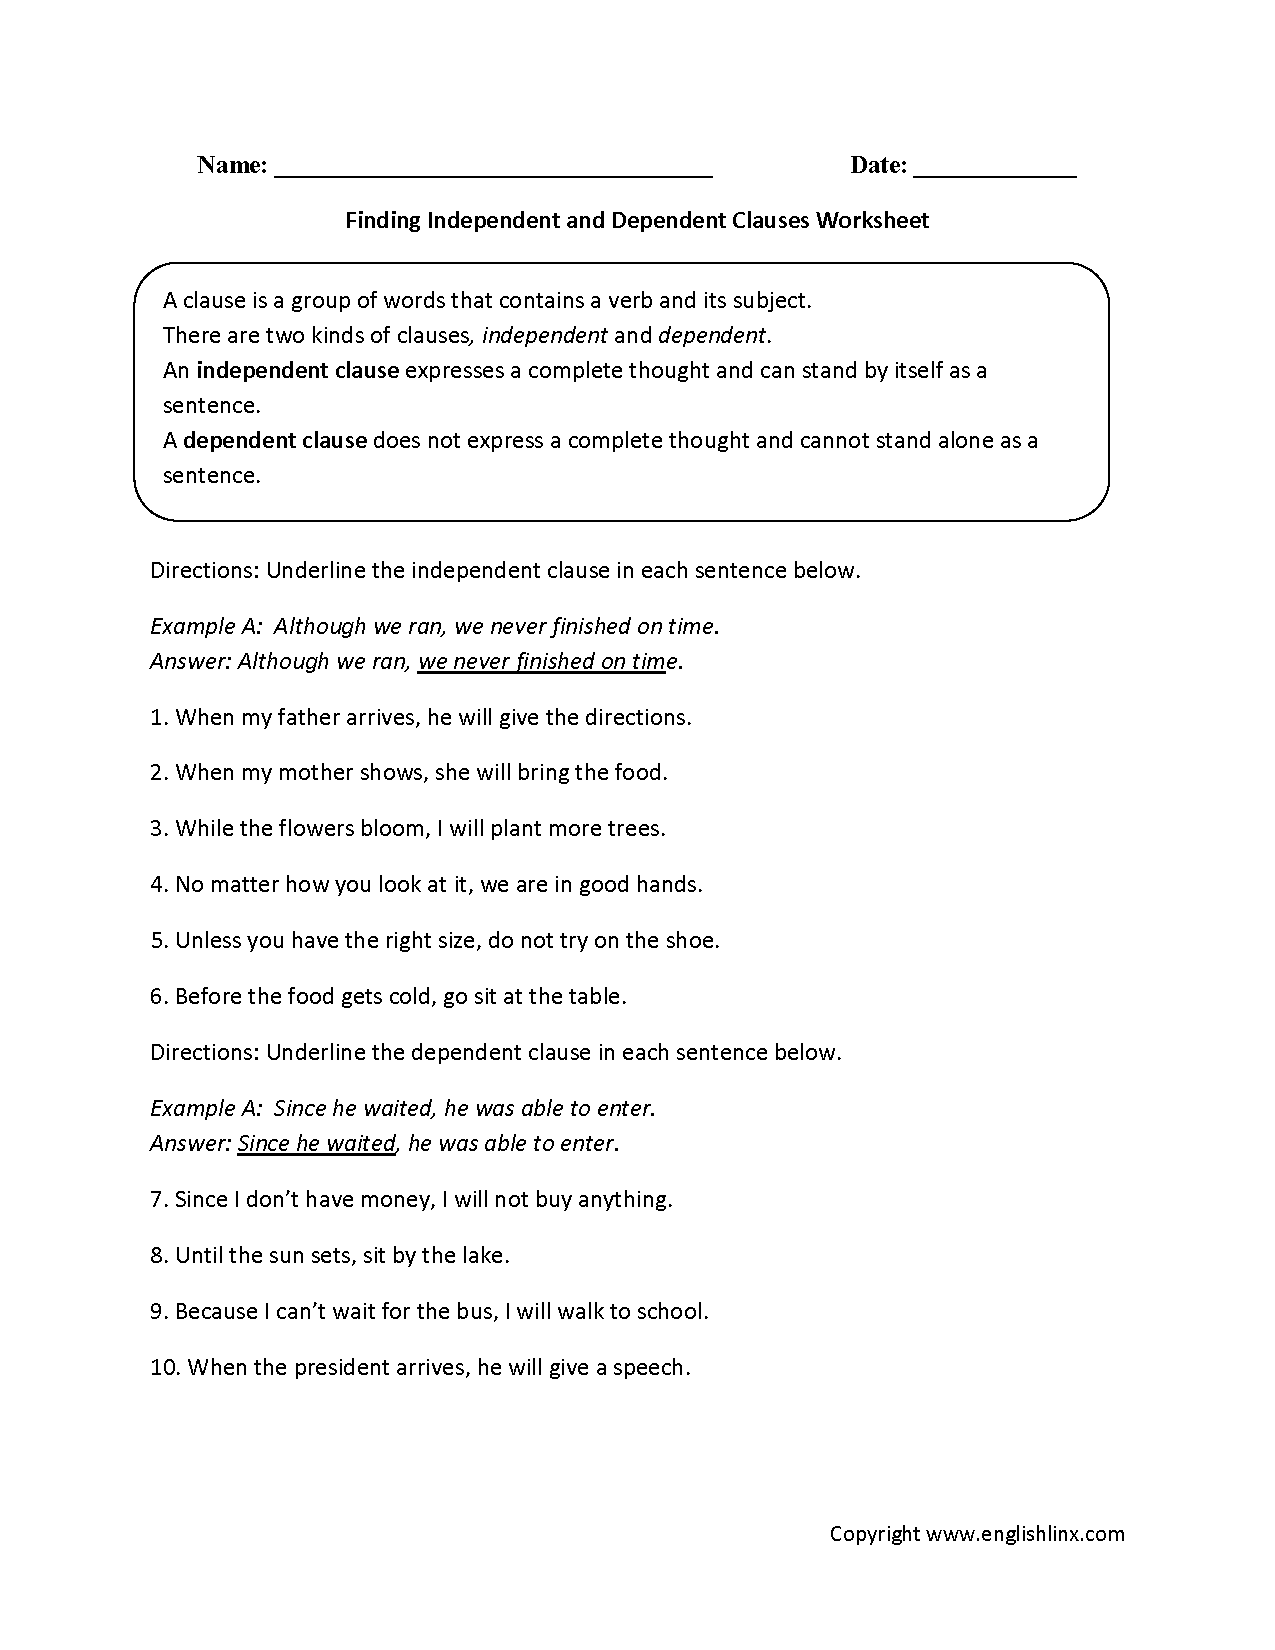 Clauses Worksheets | Finding Independent and Dependent Clauses ...